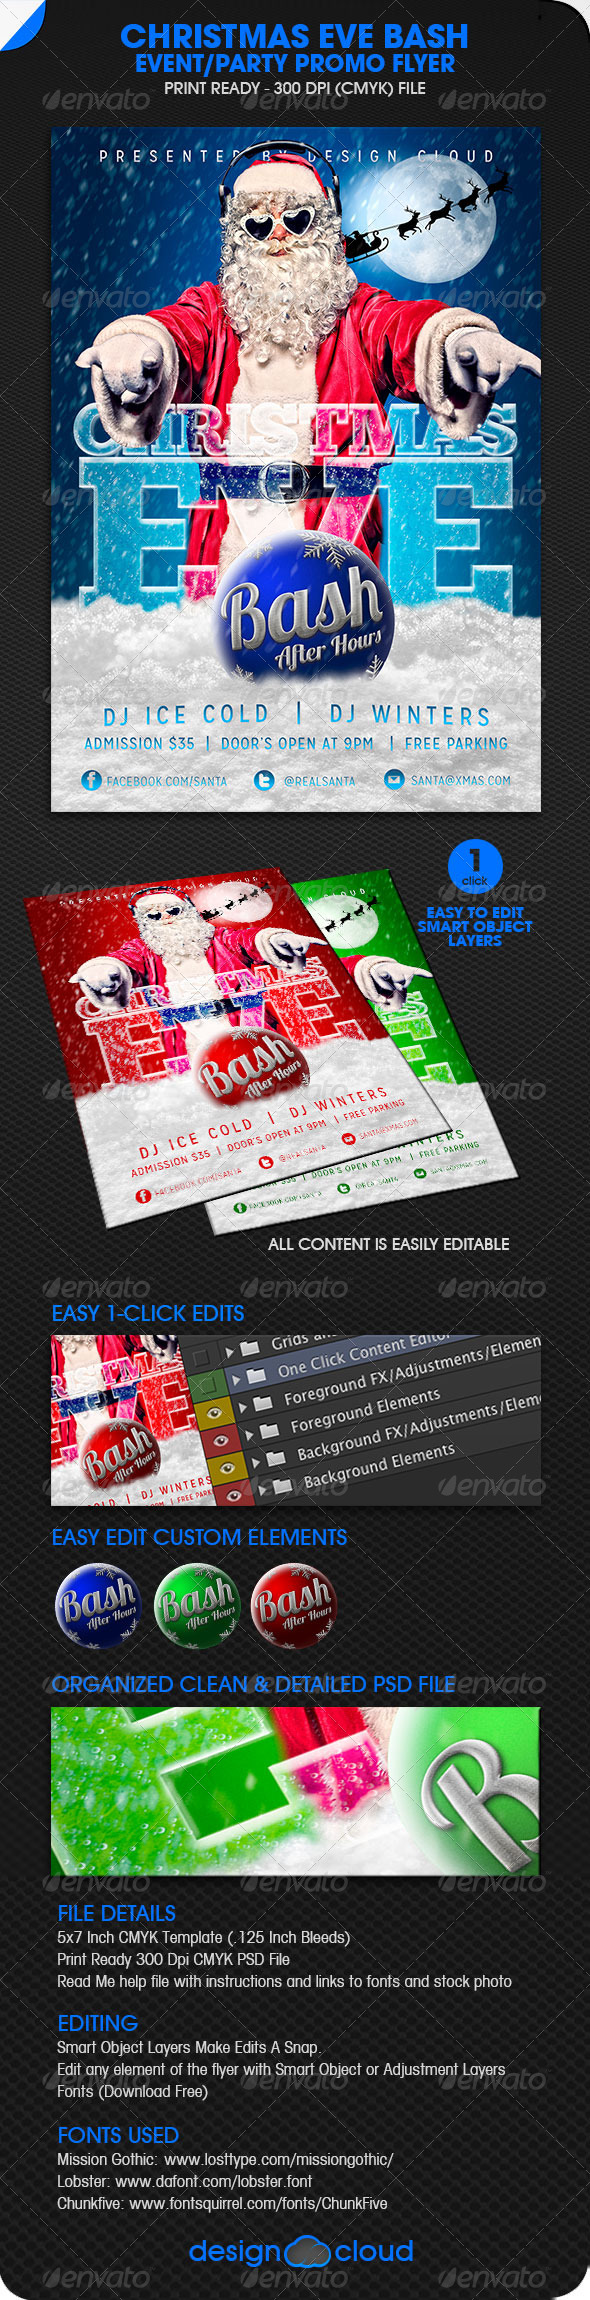 GraphicRiver Christmas Eve Bash Party Event Flyer 6214010